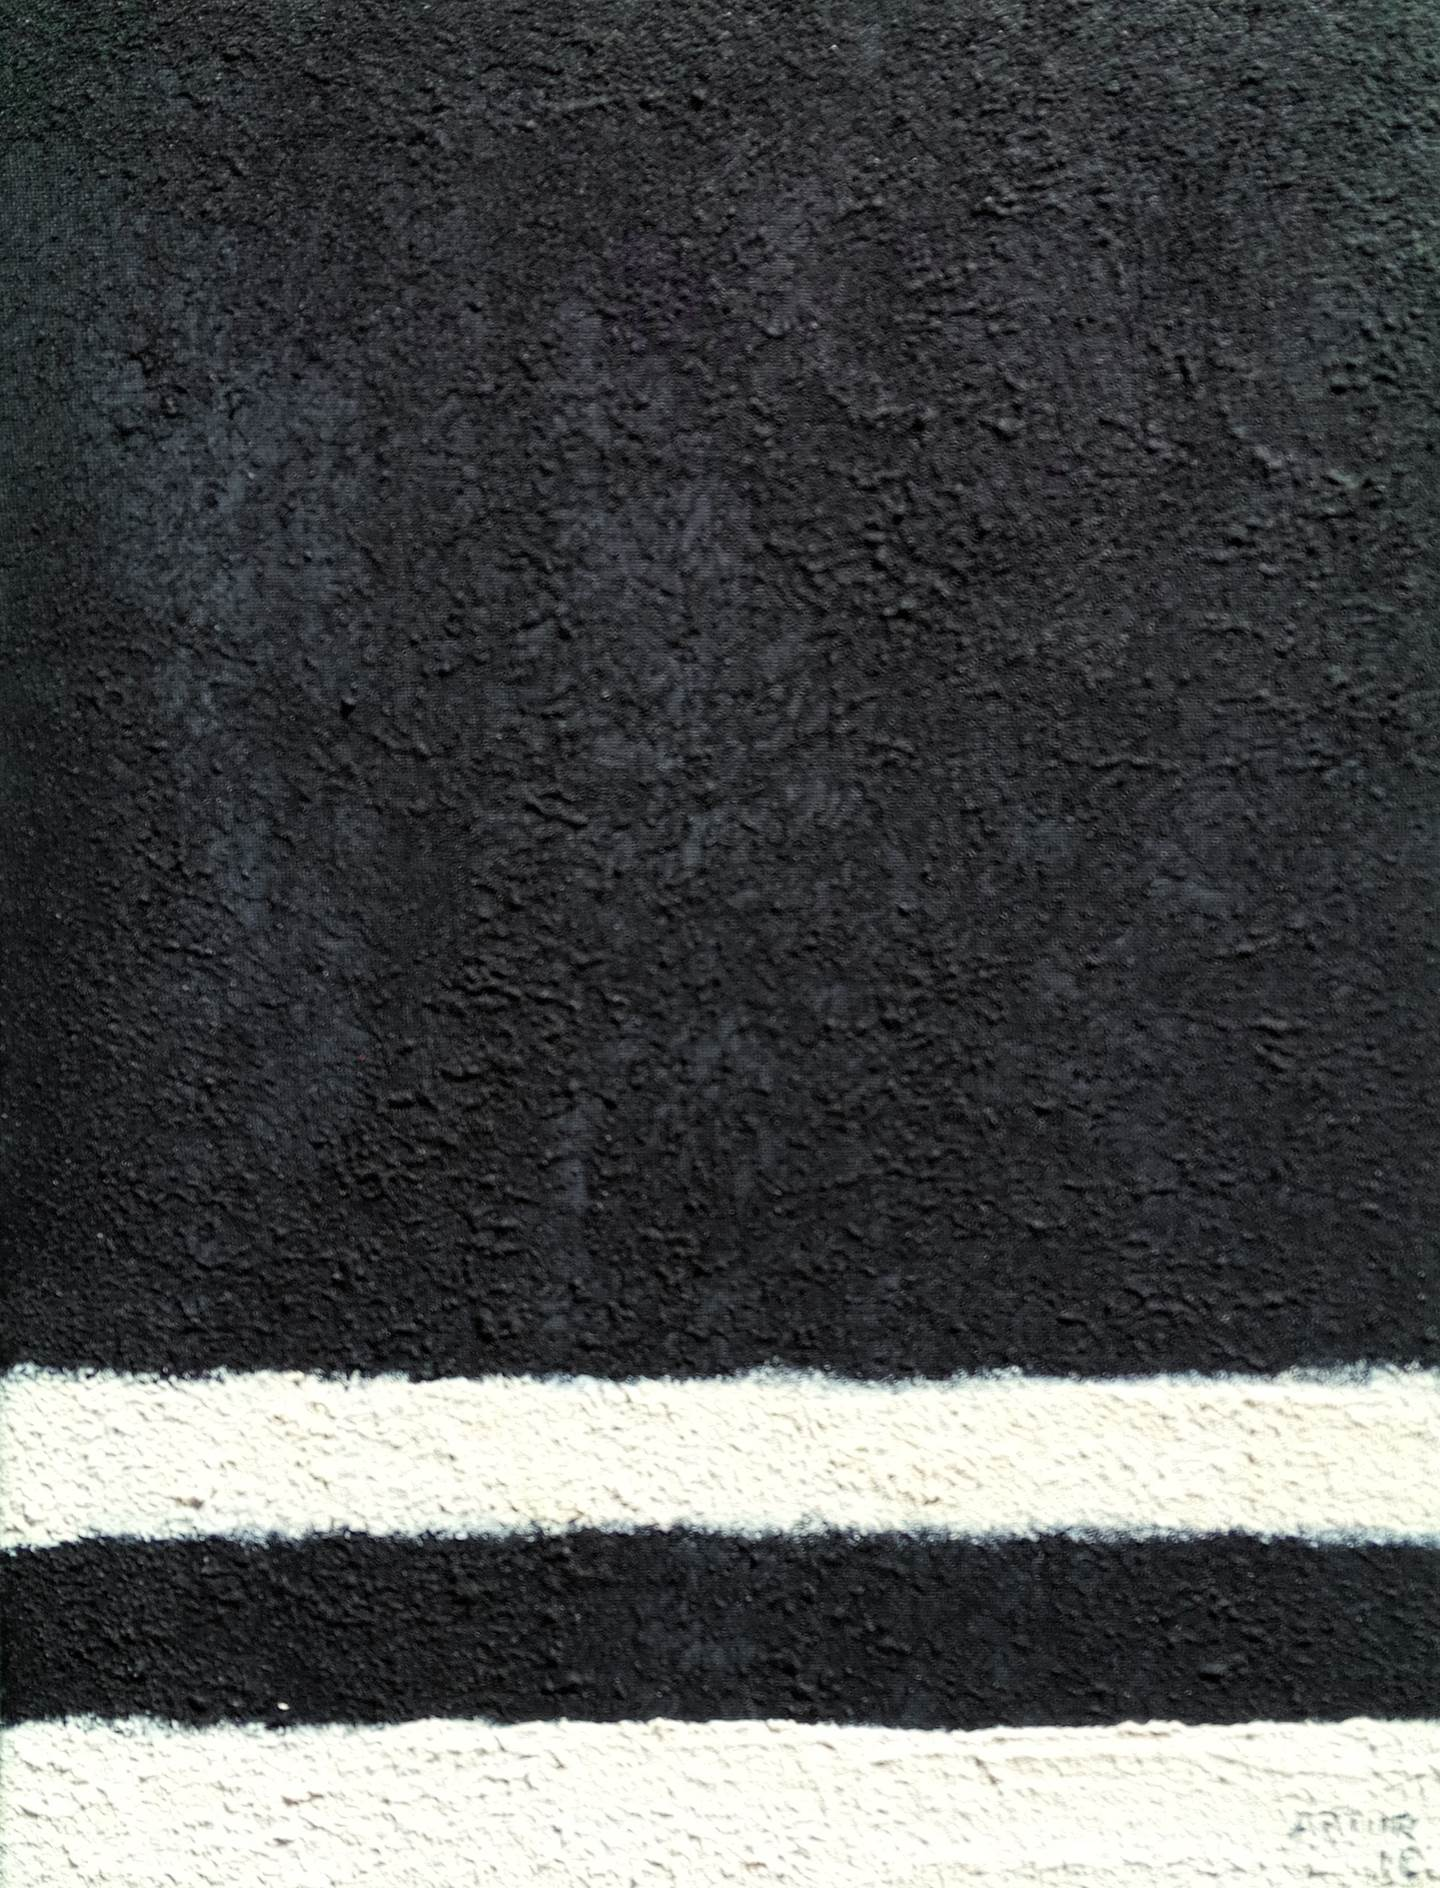 The road, original Abstract Acrylic Painting by Artur Efigénio